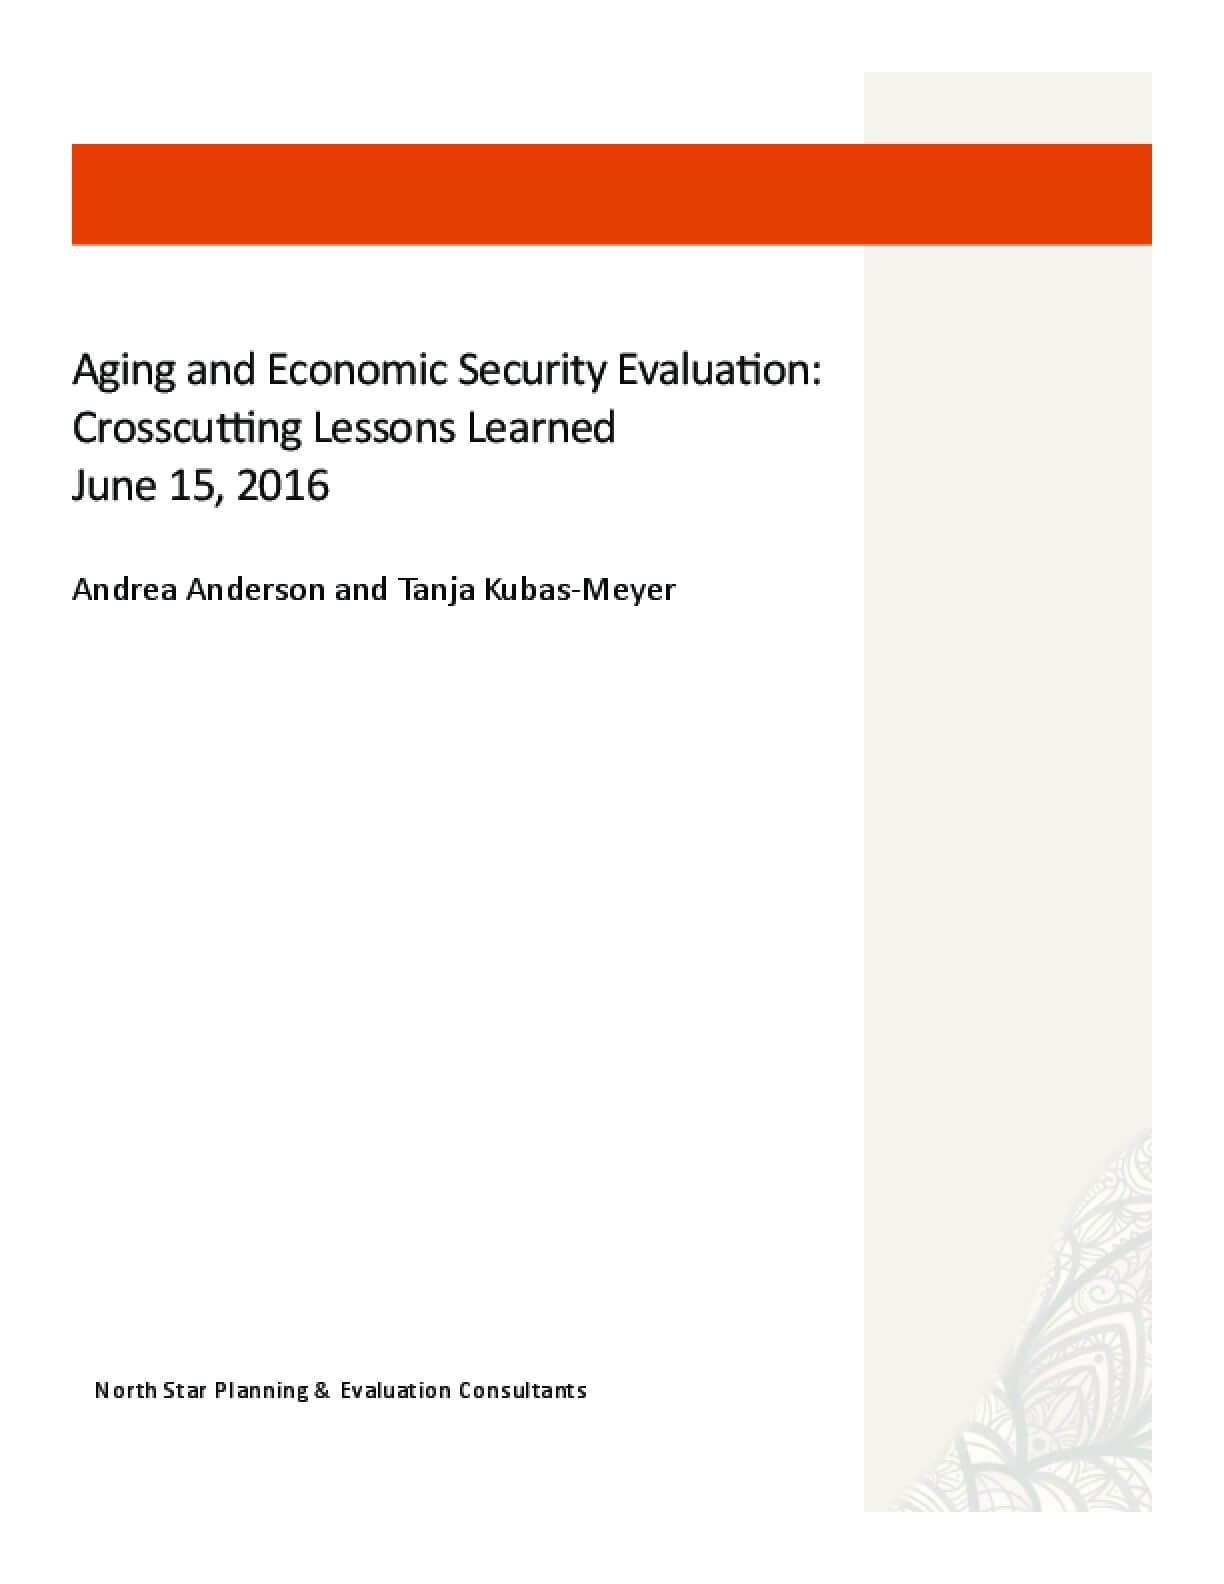 Aging and Economic Security Evaluation: Crosscutting Lessons Learned